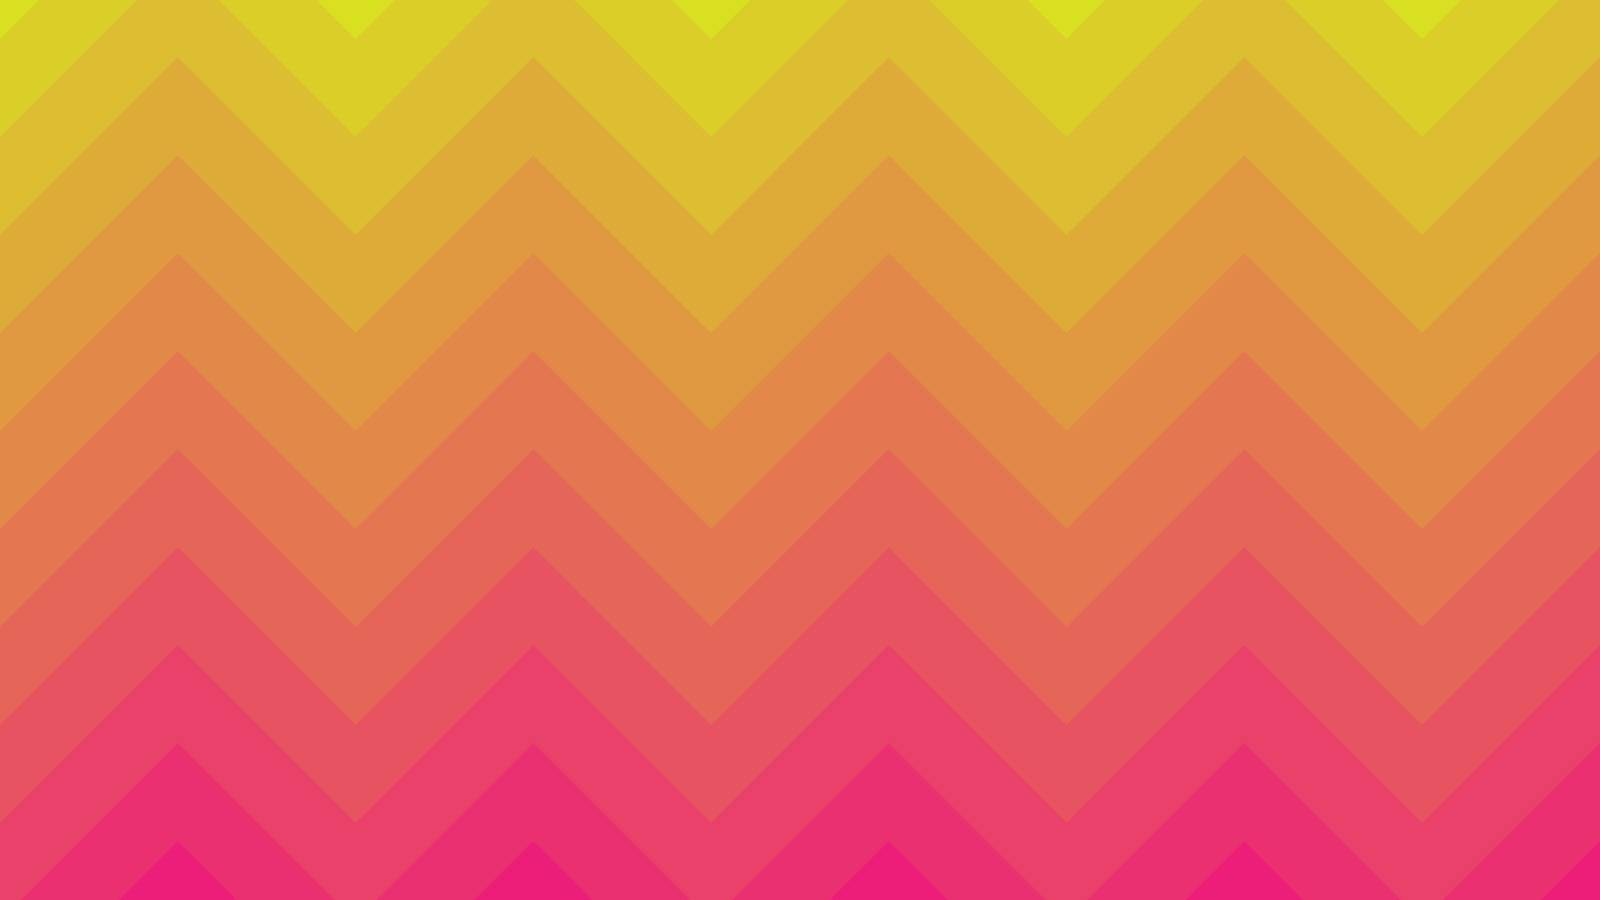 Yellow and Pink vector layout with triangles. Modern abstract illustration for website, poster, banner ads.